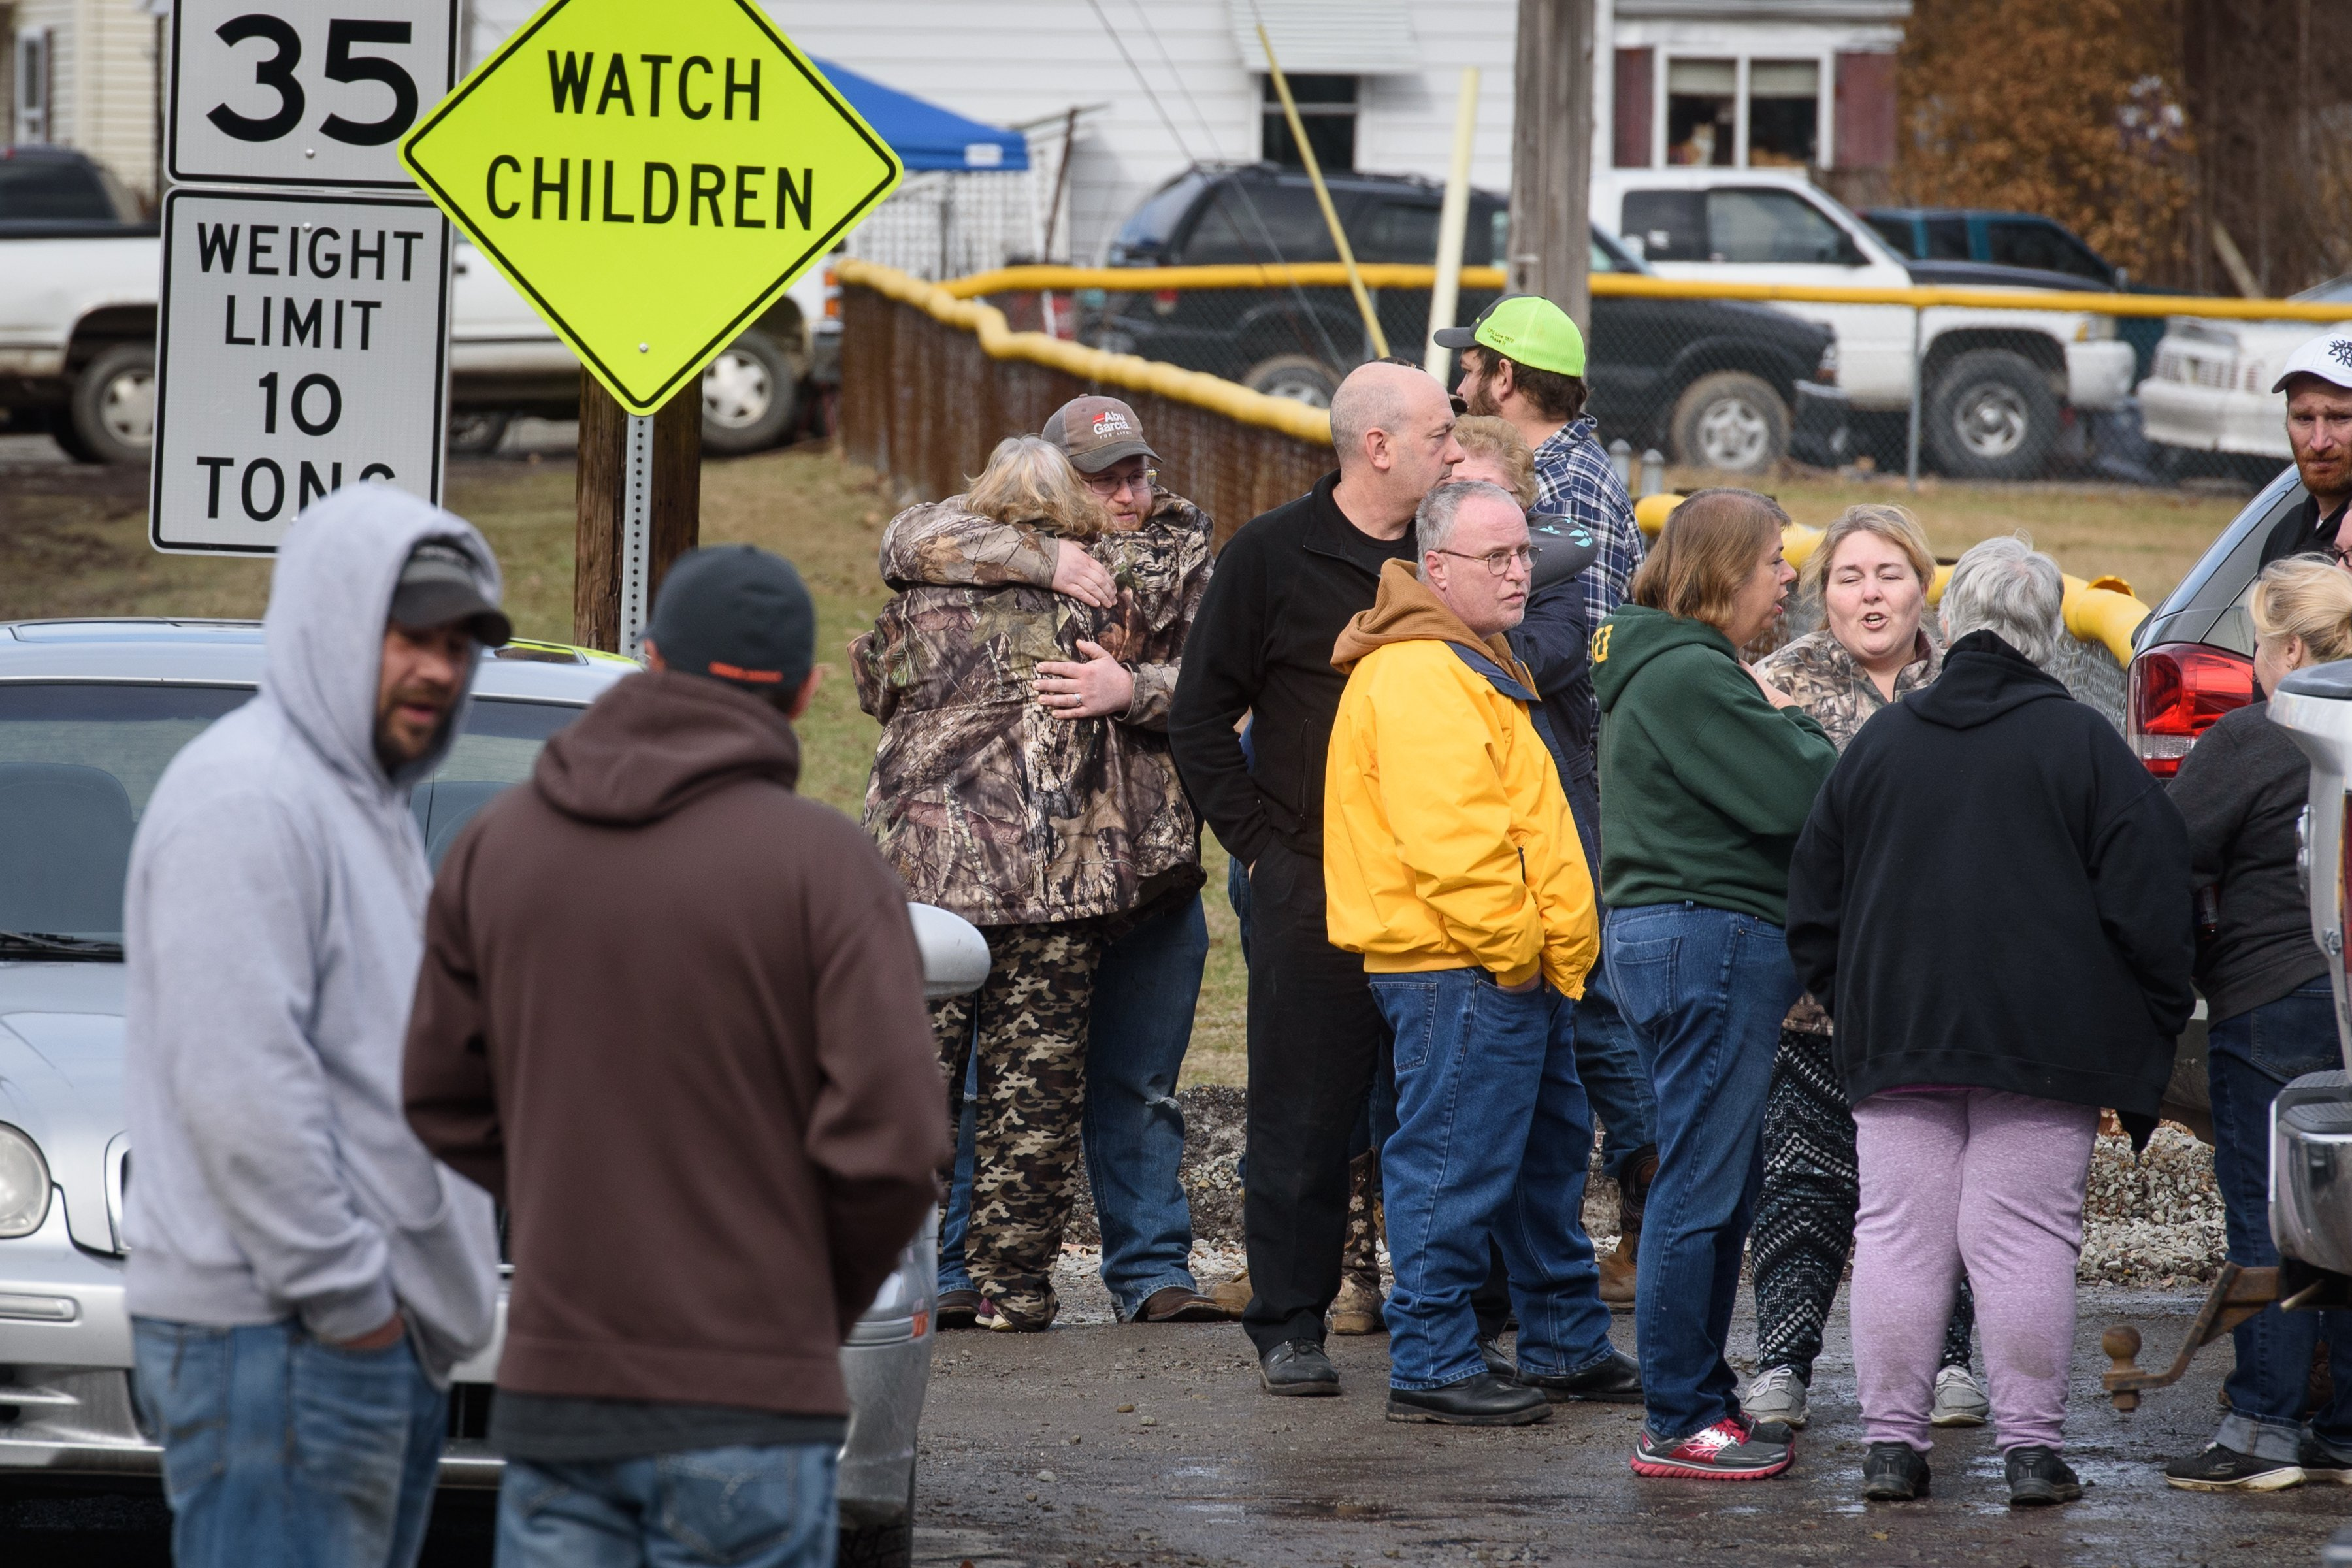 Family members and friends console each other after four people are killed at a Pennsylvania car wash. (photo credit: Getty Images North America/Getty Images via CNN)